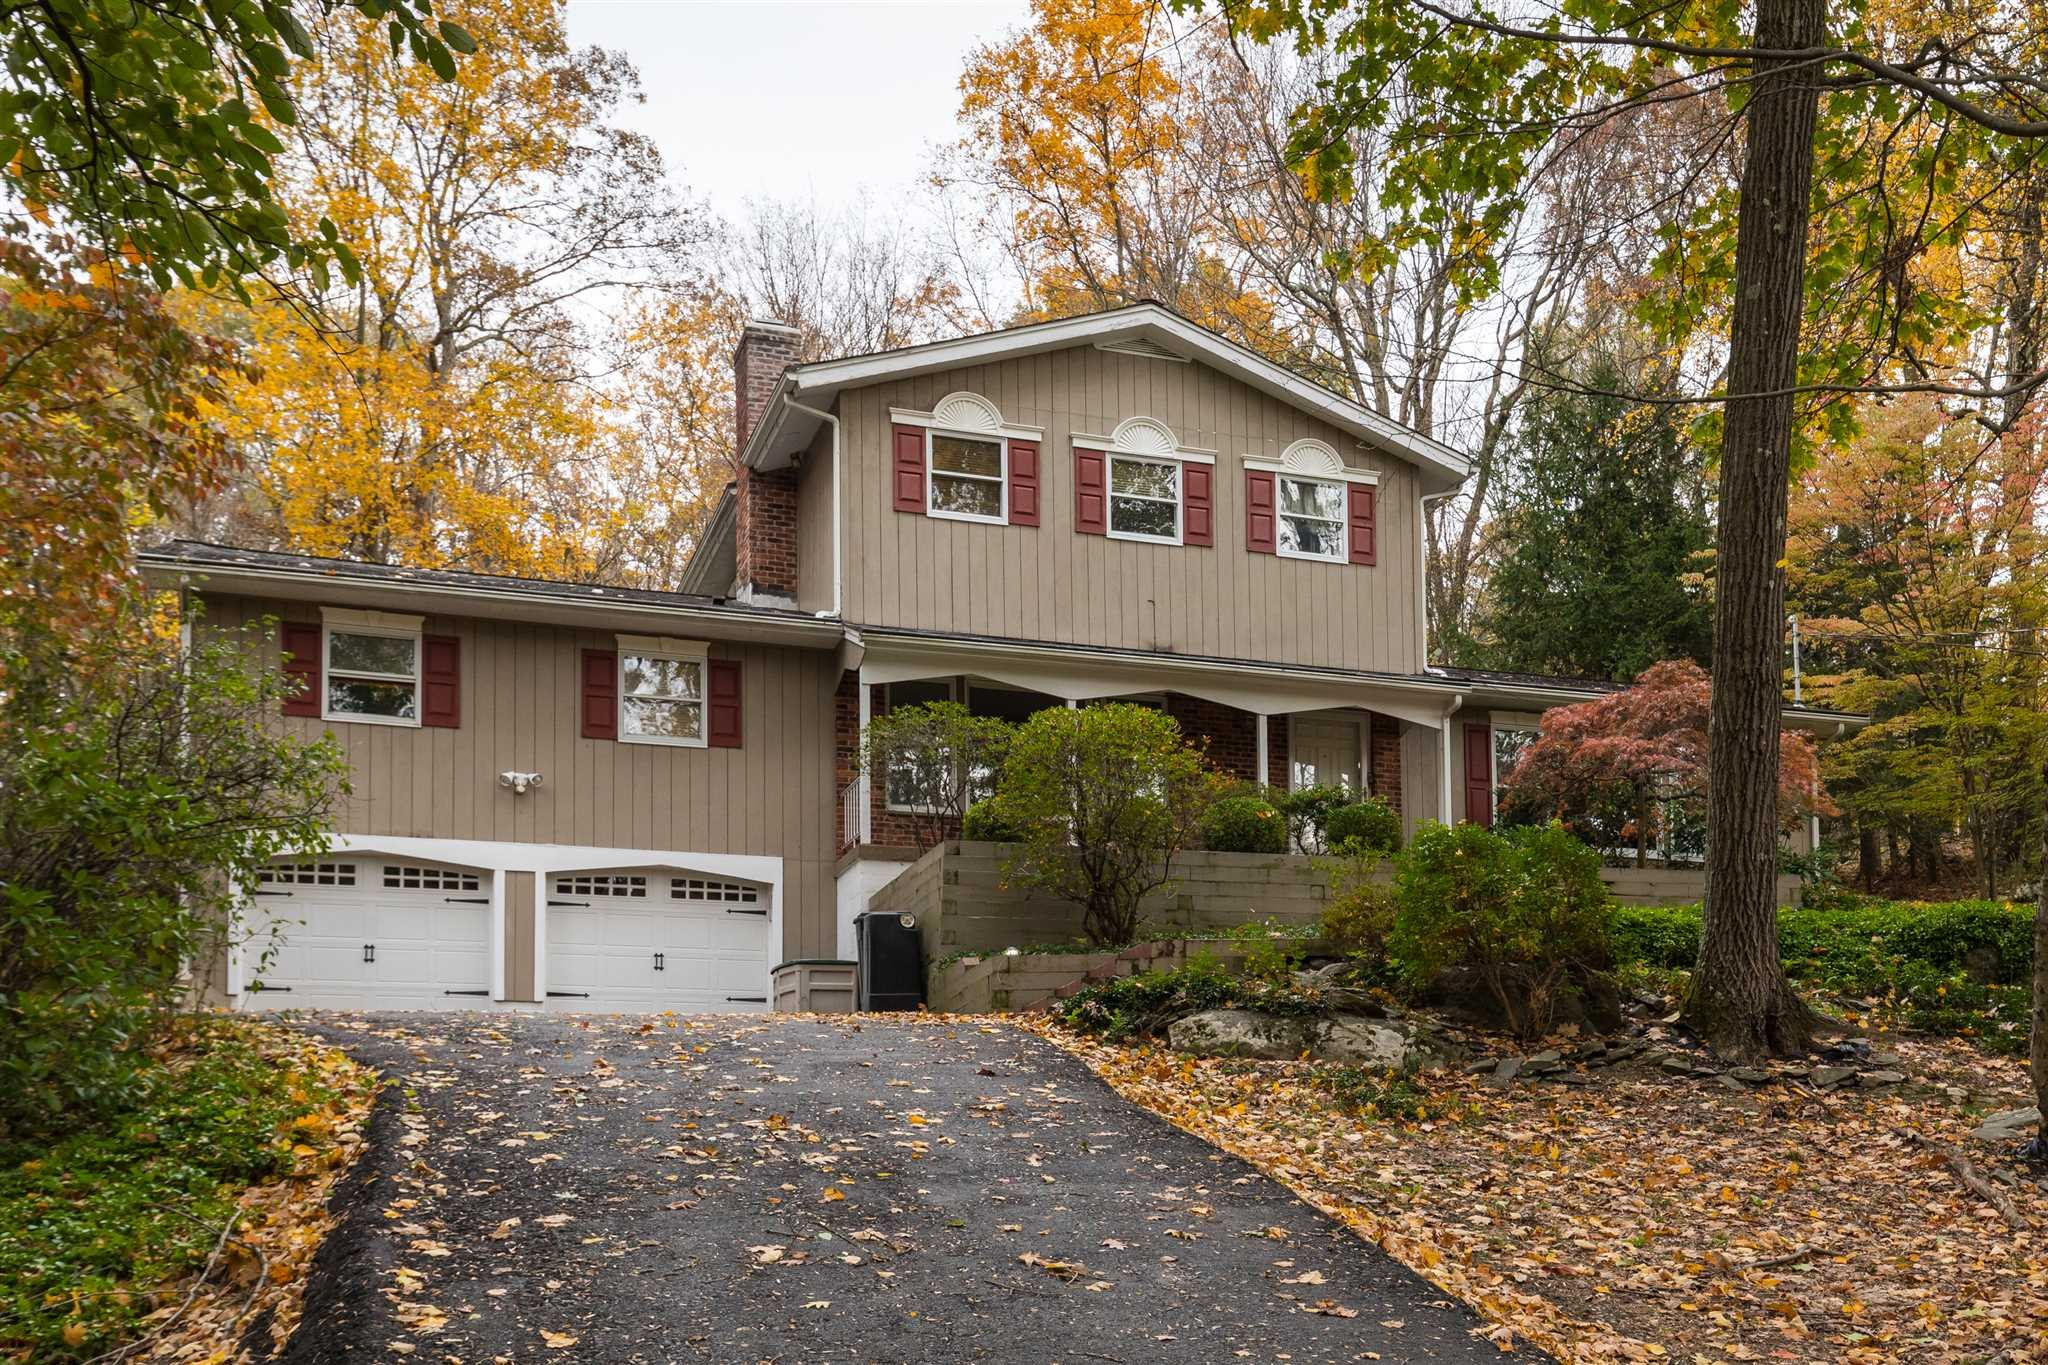 Single Family Home for Sale at 109 GRETNA WOODS Road 109 GRETNA WOODS Road Pleasant Valley, New York 12569 United States